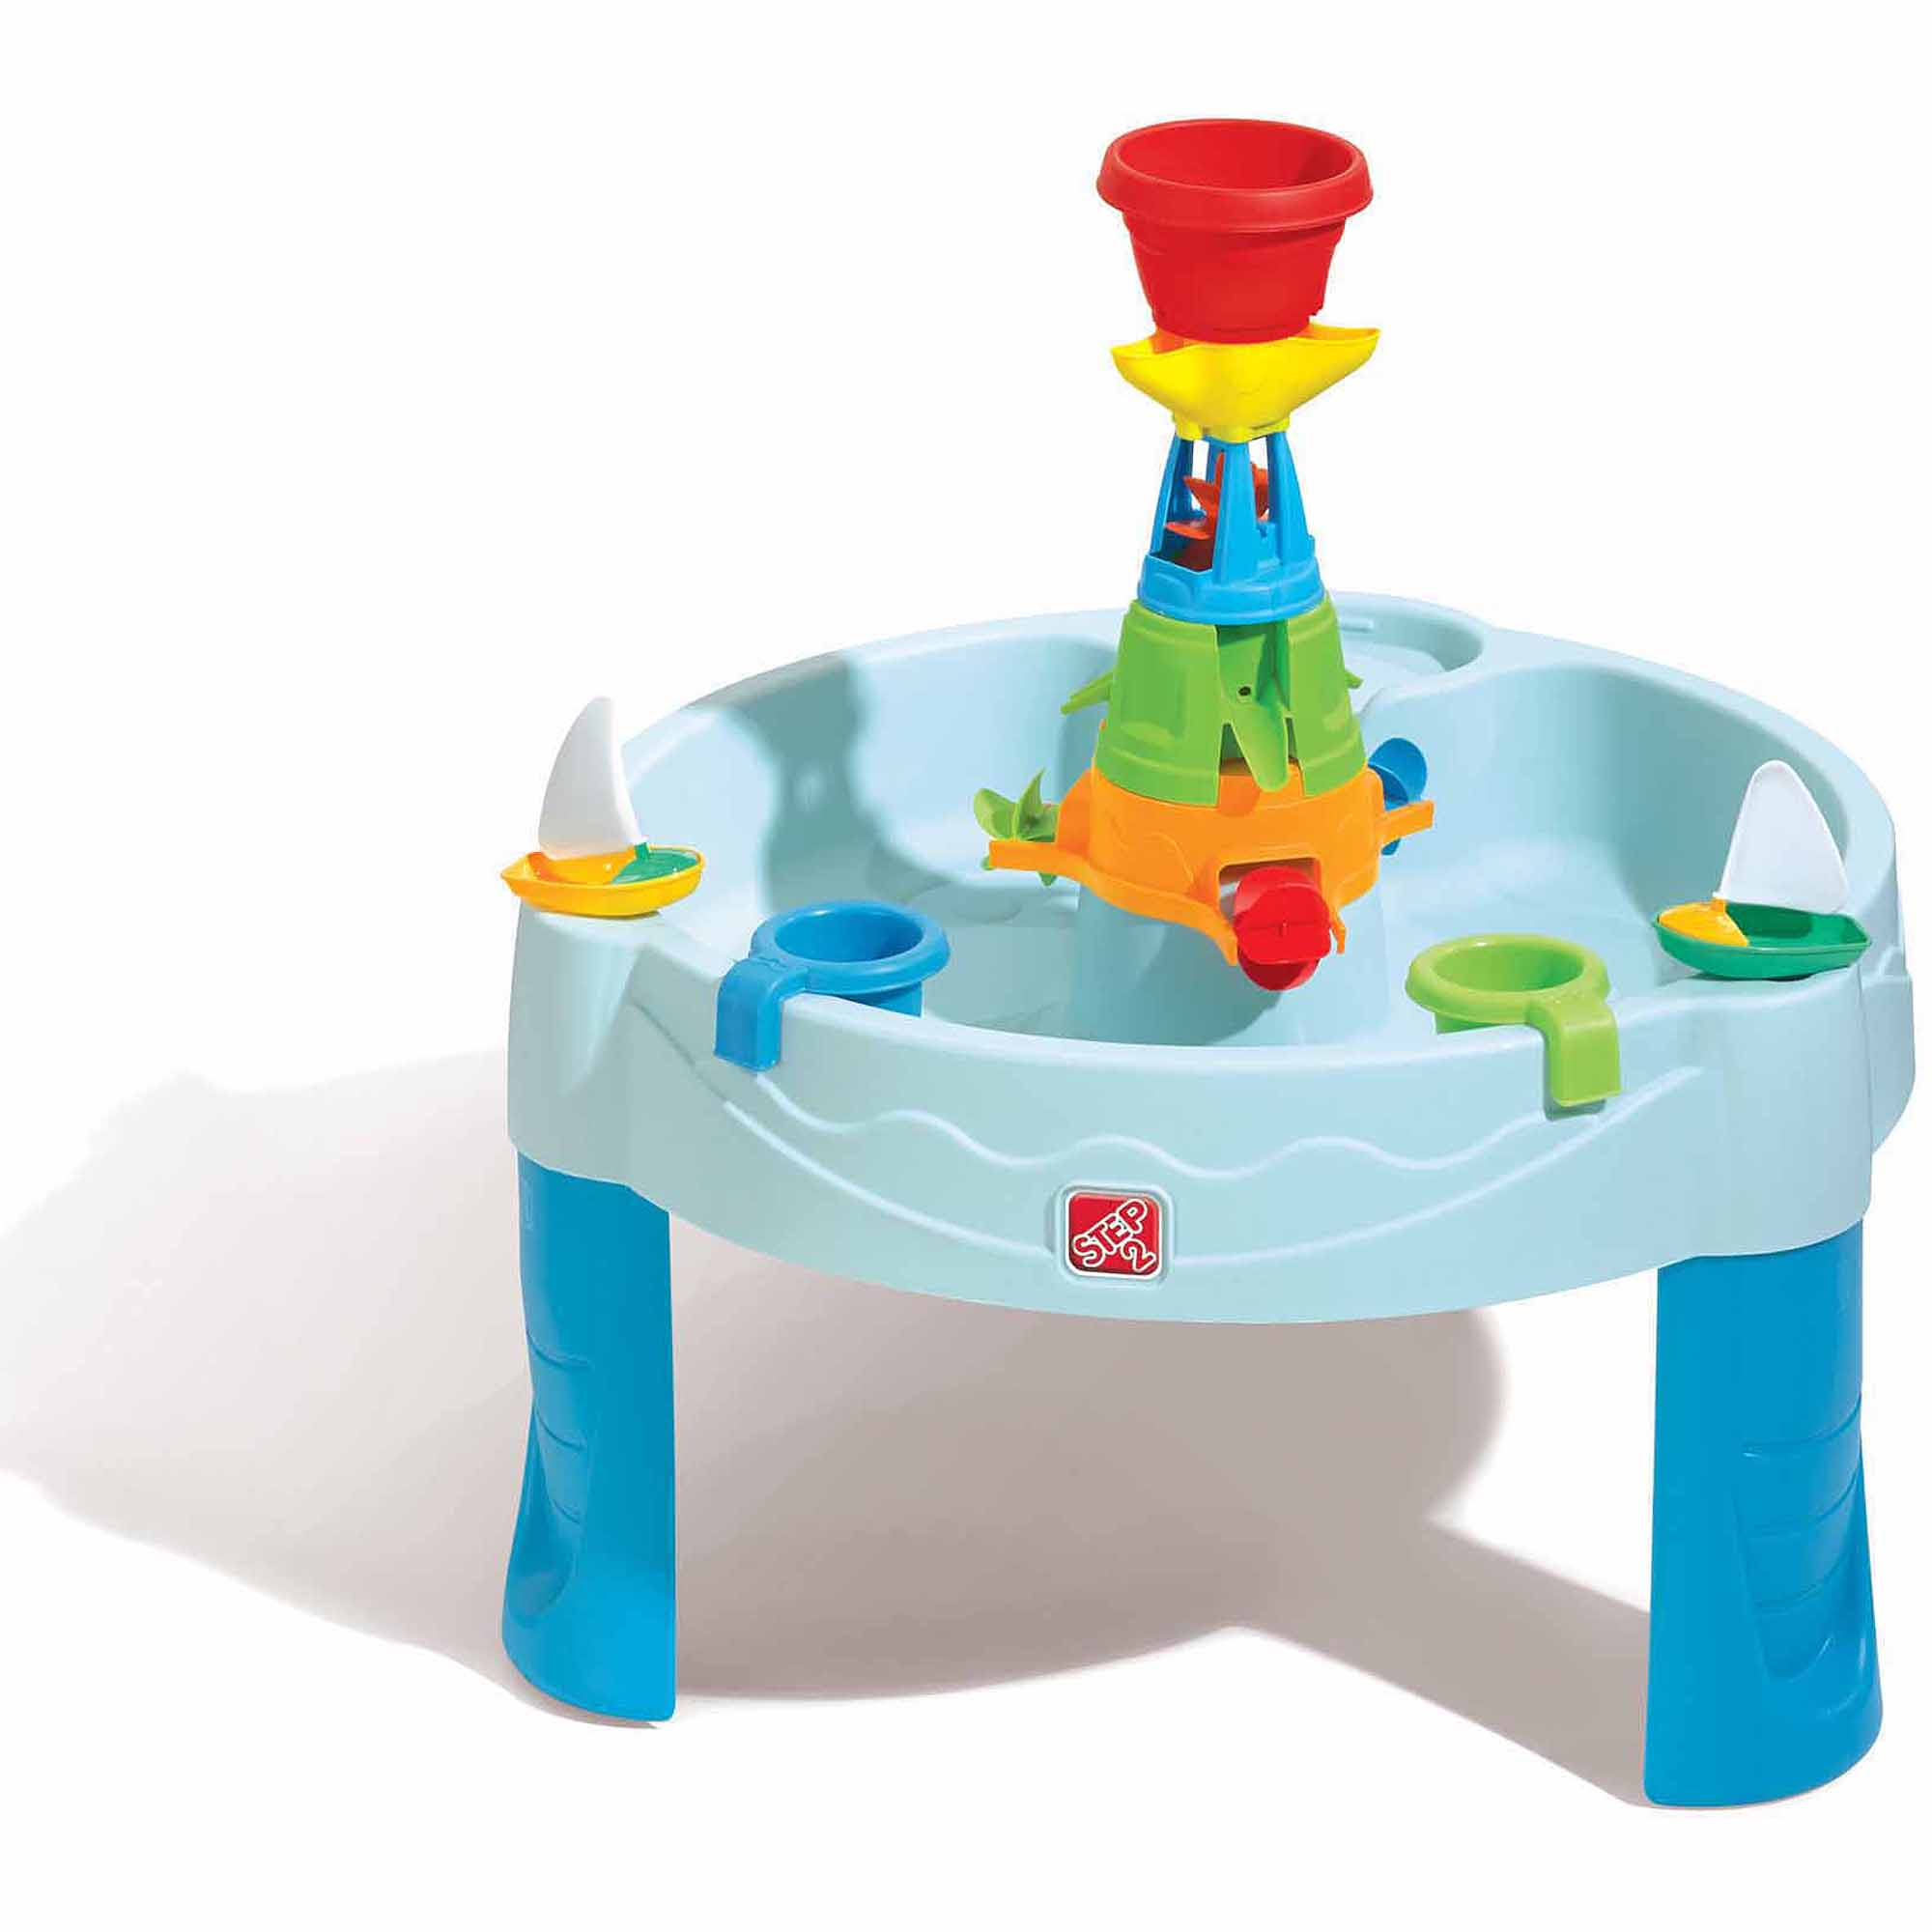 step2 water works play table includes 2 cups and 2 sailboats